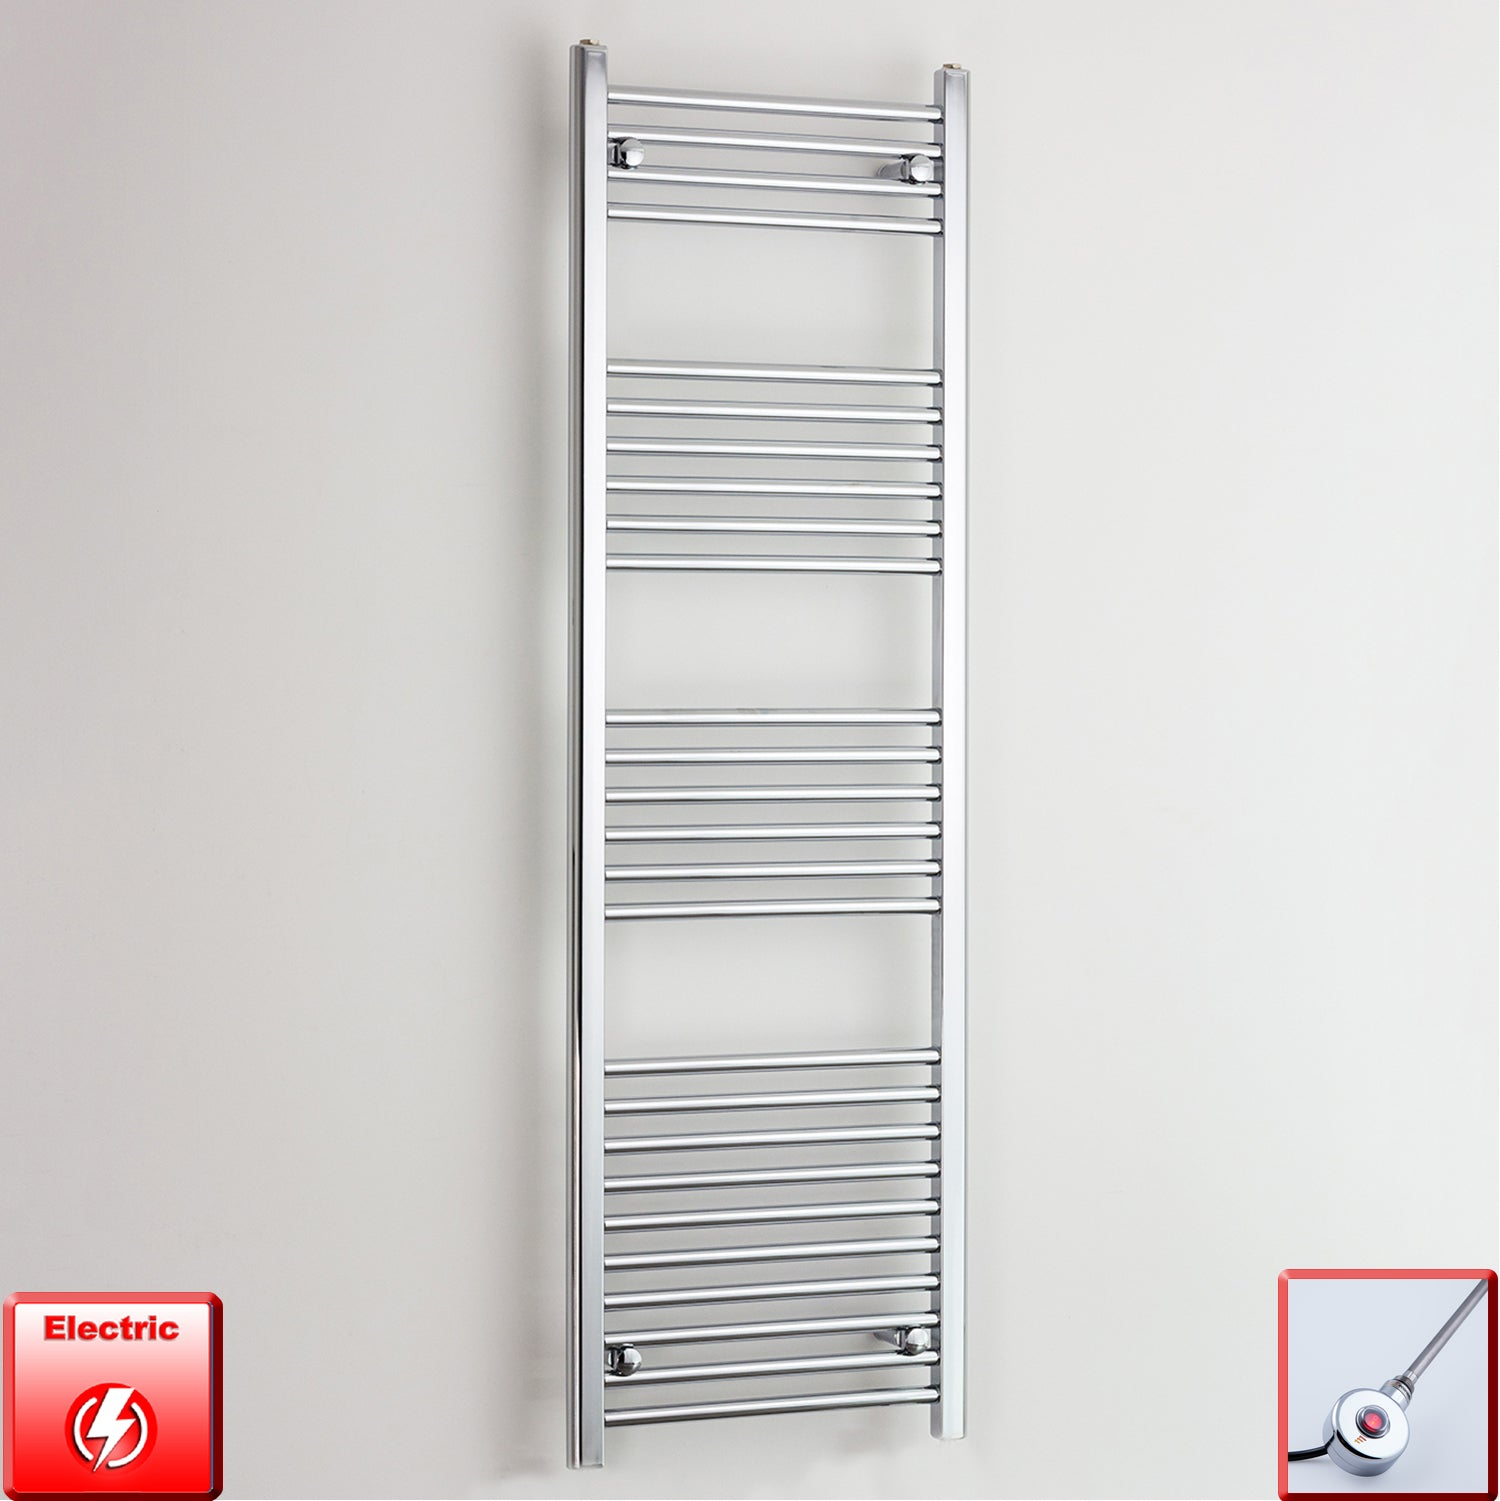 400mm Wide 1800mm High Flat Or Curved Chrome Pre-Filled Electric Heated Towel Rail Radiator HTR